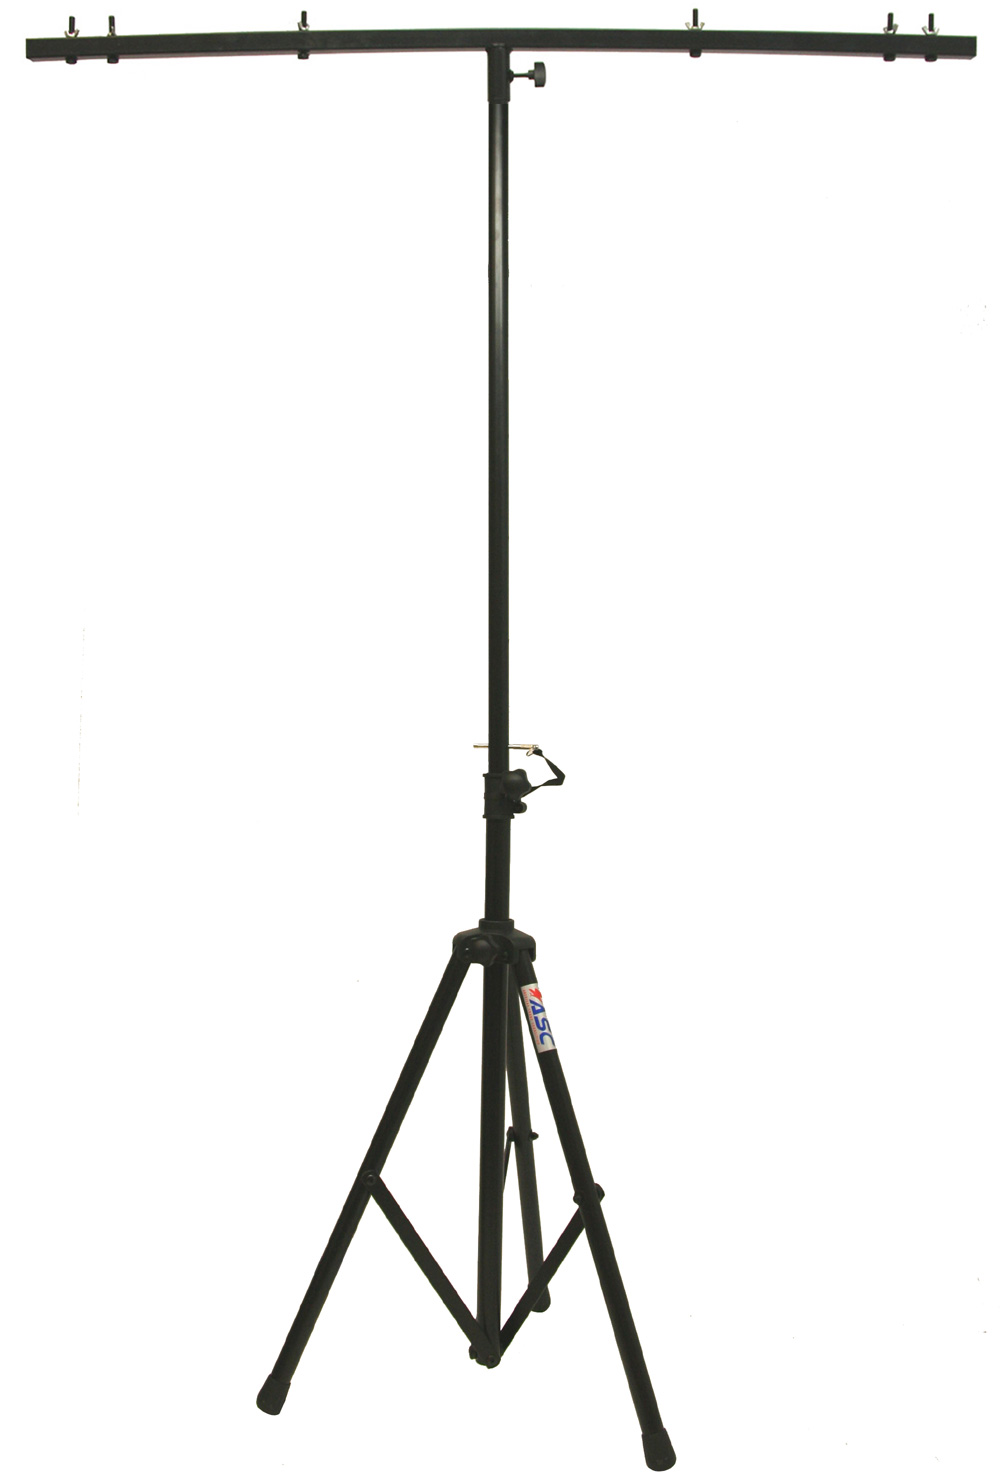 Pro audio dj lighting universal par can wash light fixture tripod pro audio dj lighting universal par can wash light fixture tripod stand t bar mozeypictures Image collections